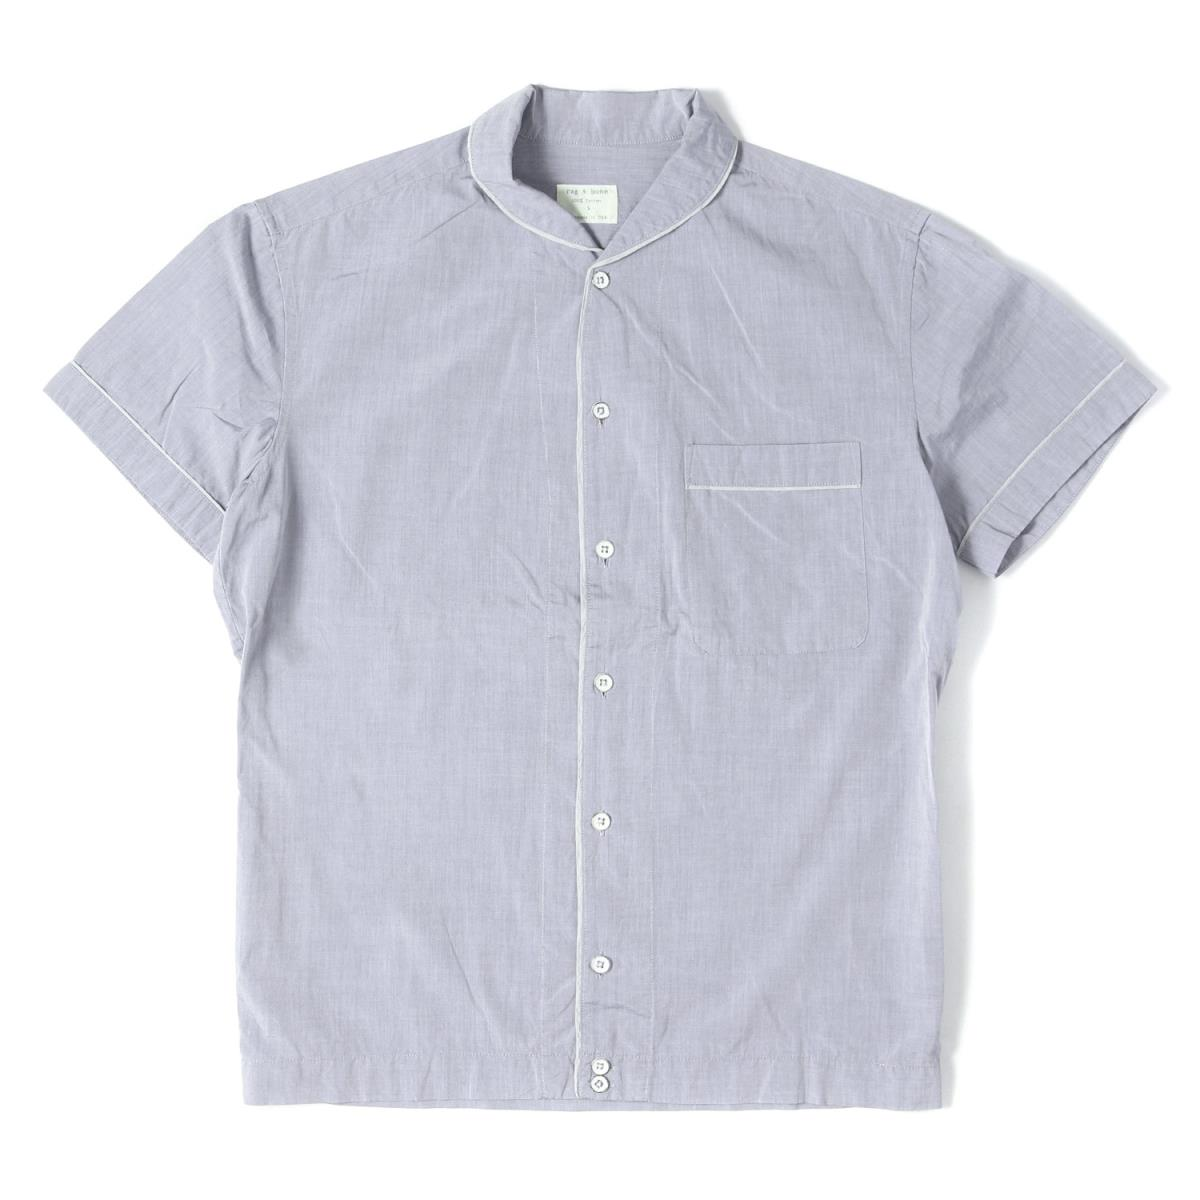 f77b4c7fb1de5 Blue S made in Rag&bone (rag and Vaughn) piping line shawl collar cotton  short sleeves button shirt Japan